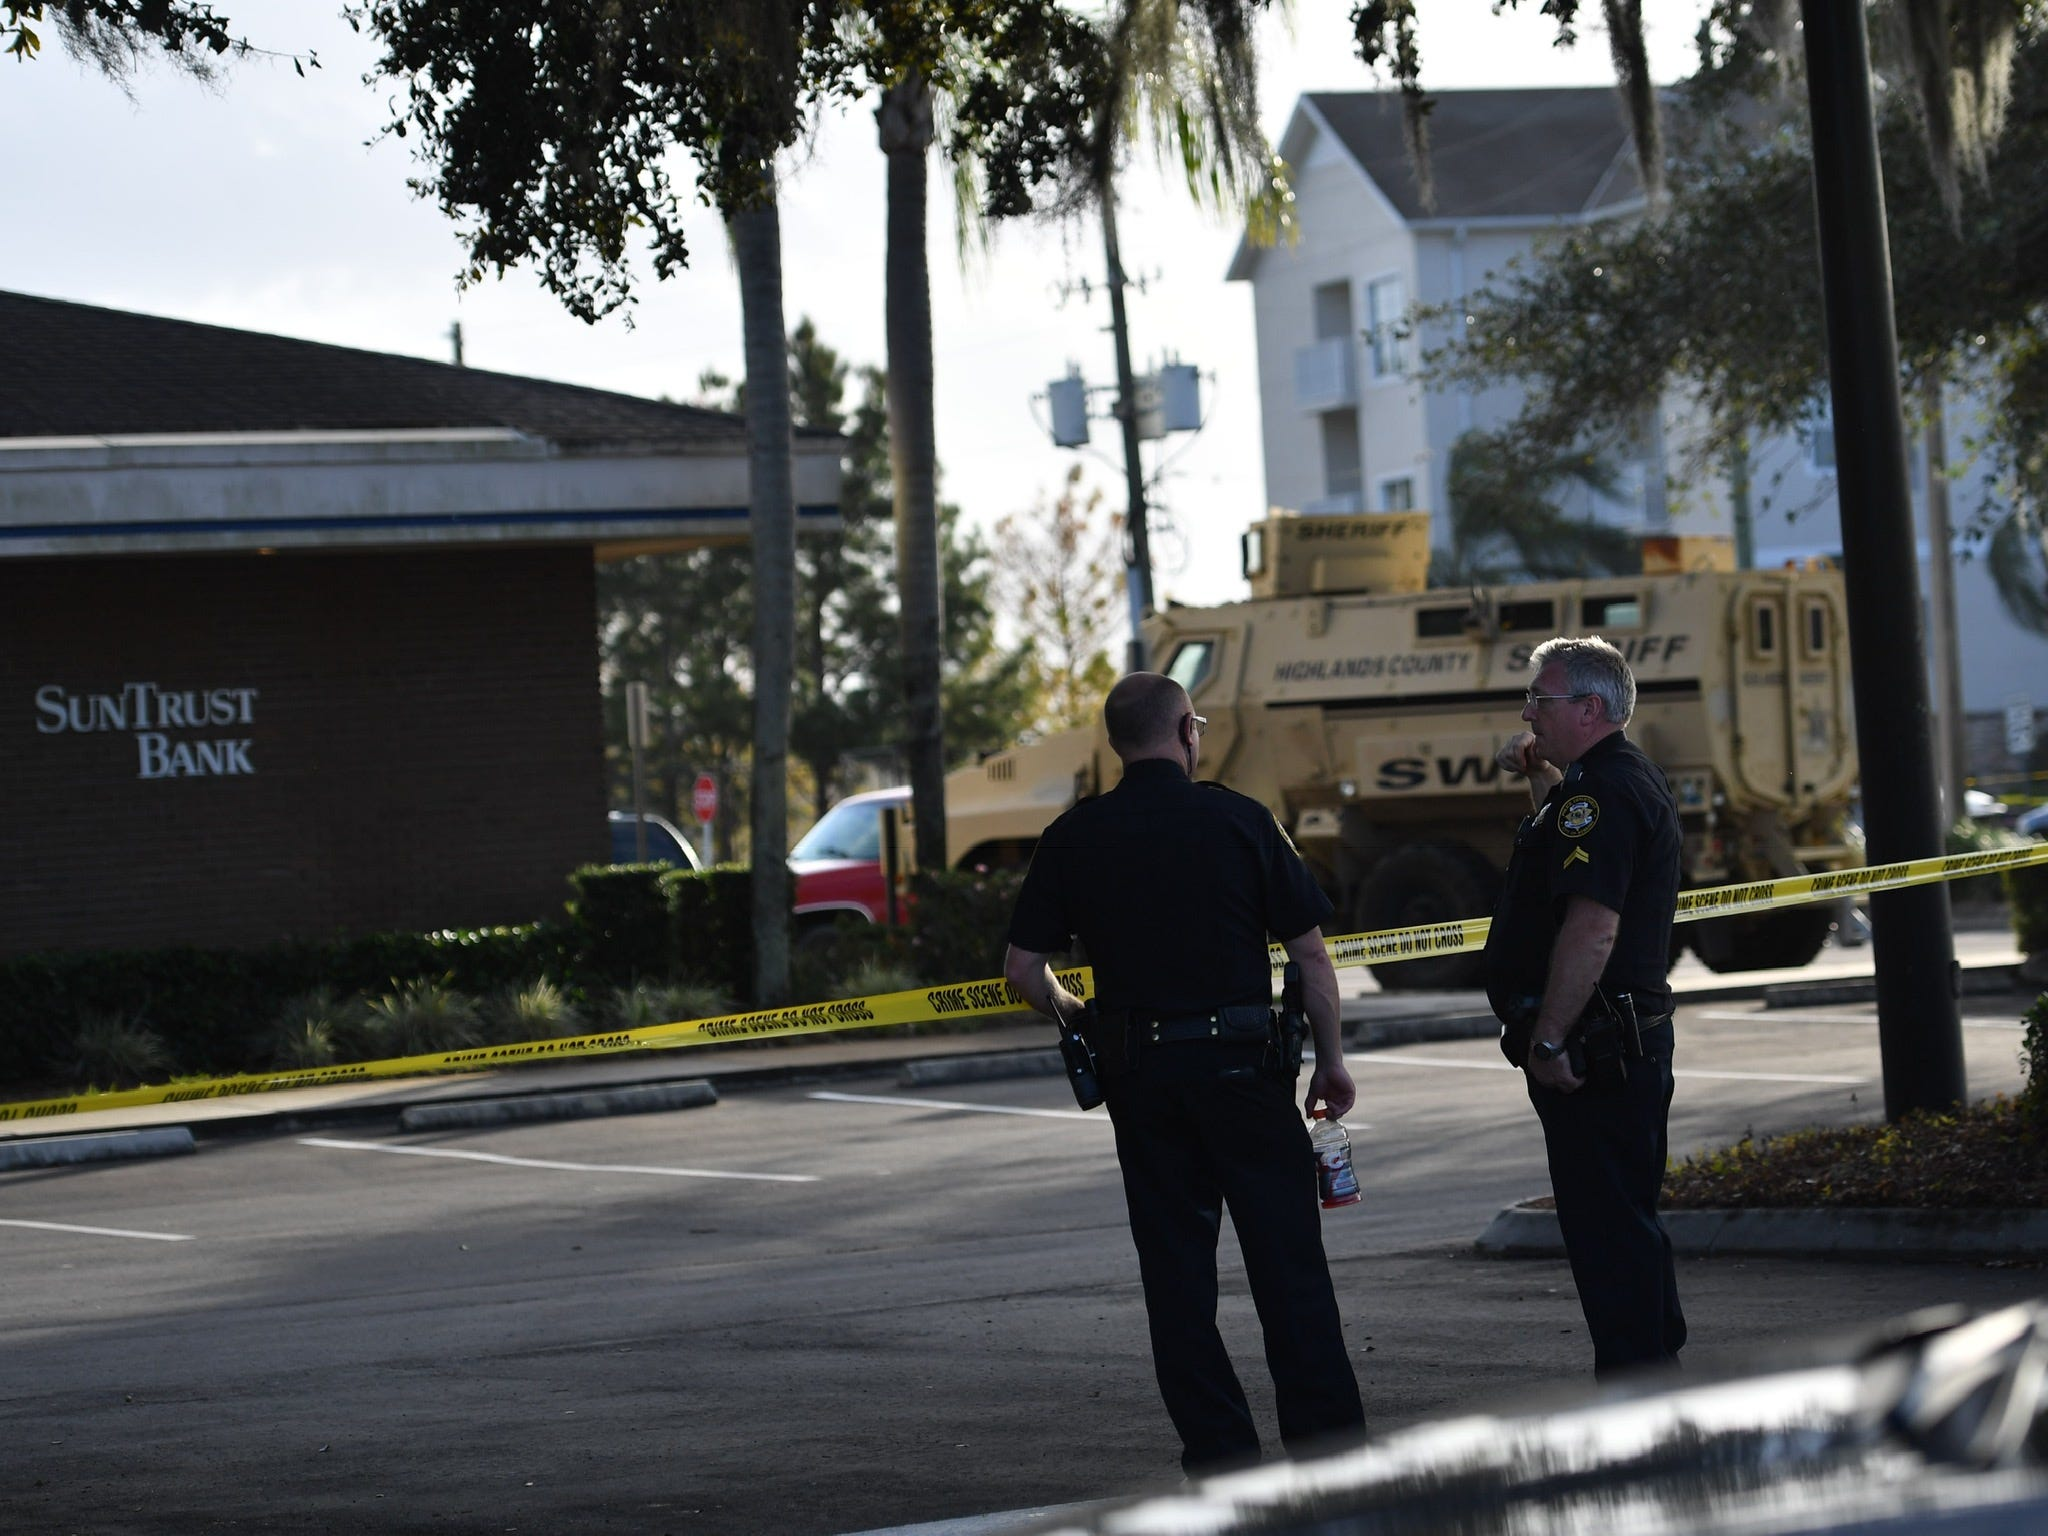 Five people were killed Wednesday, Jan. 23, 2019, at a SunTrust Bank branch in Sebring, FL on U.S. 27 after a man, identified as Zephen Xaver, entered the building and began shooting. He was later taken into custody after a SWAT team negotiated with him and he surrendered.